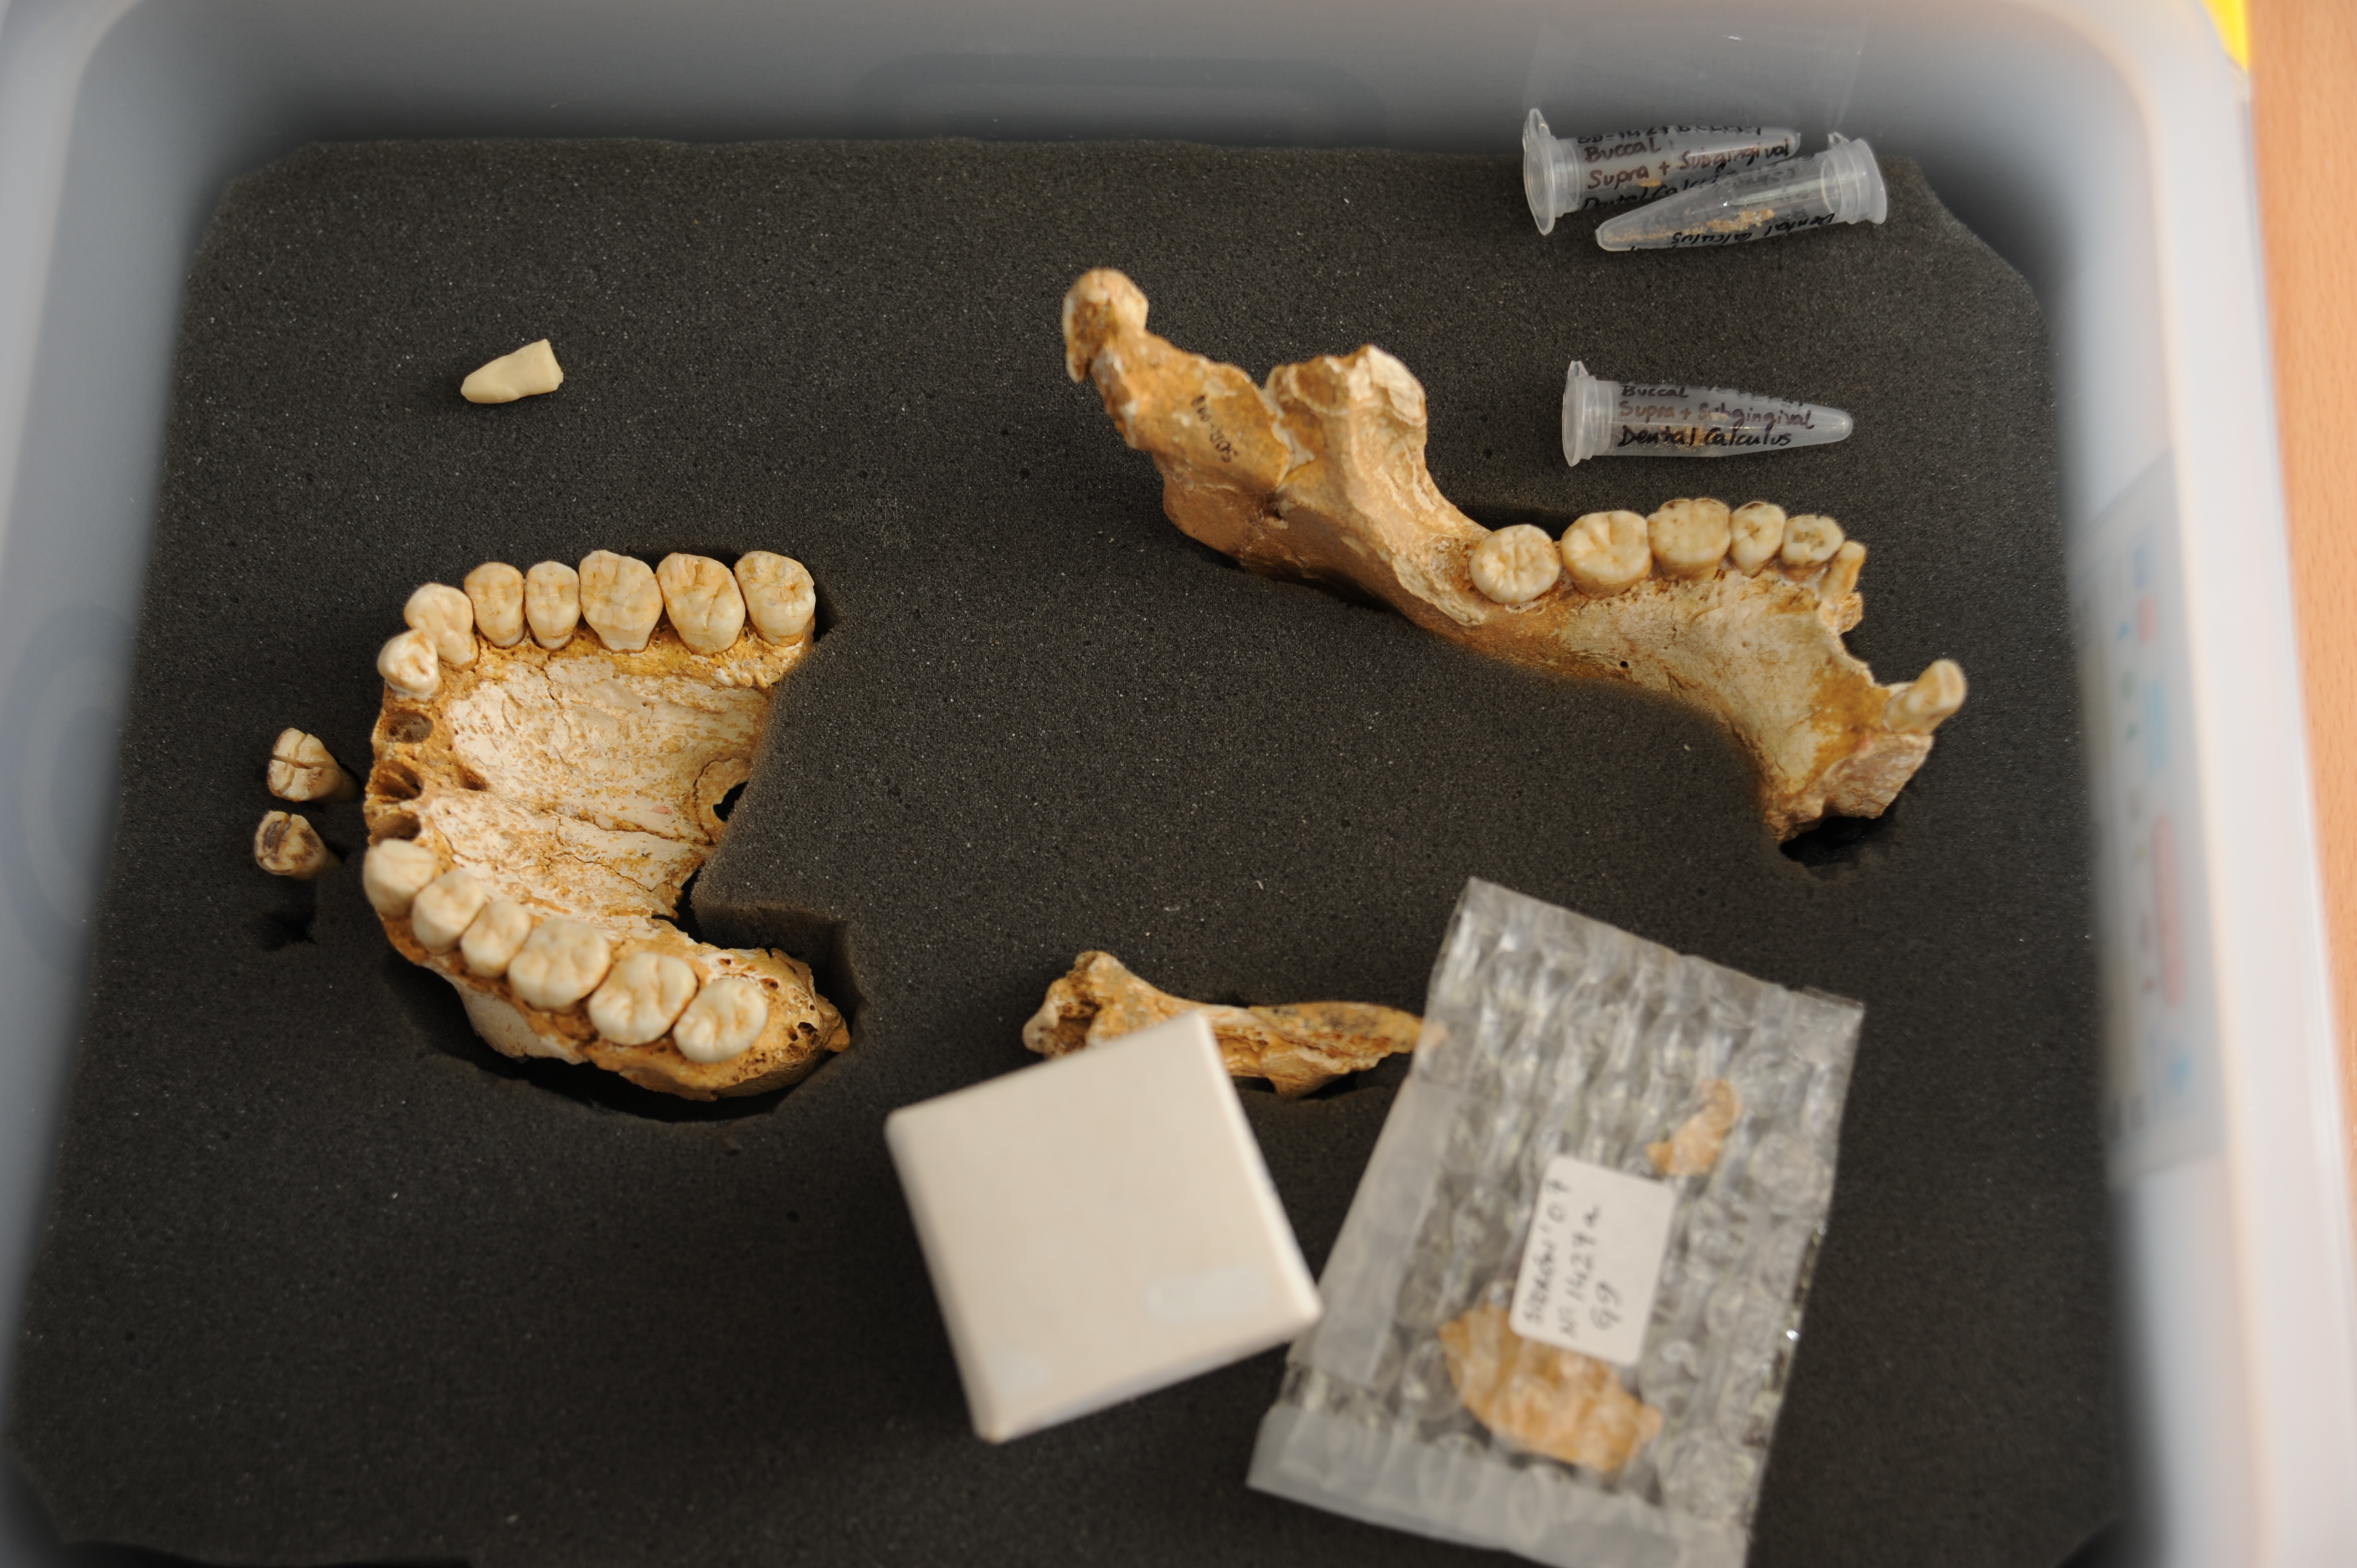 Image: Neanderthal remains found in El Sidrón Cave. Credit: CSIC Comunicación